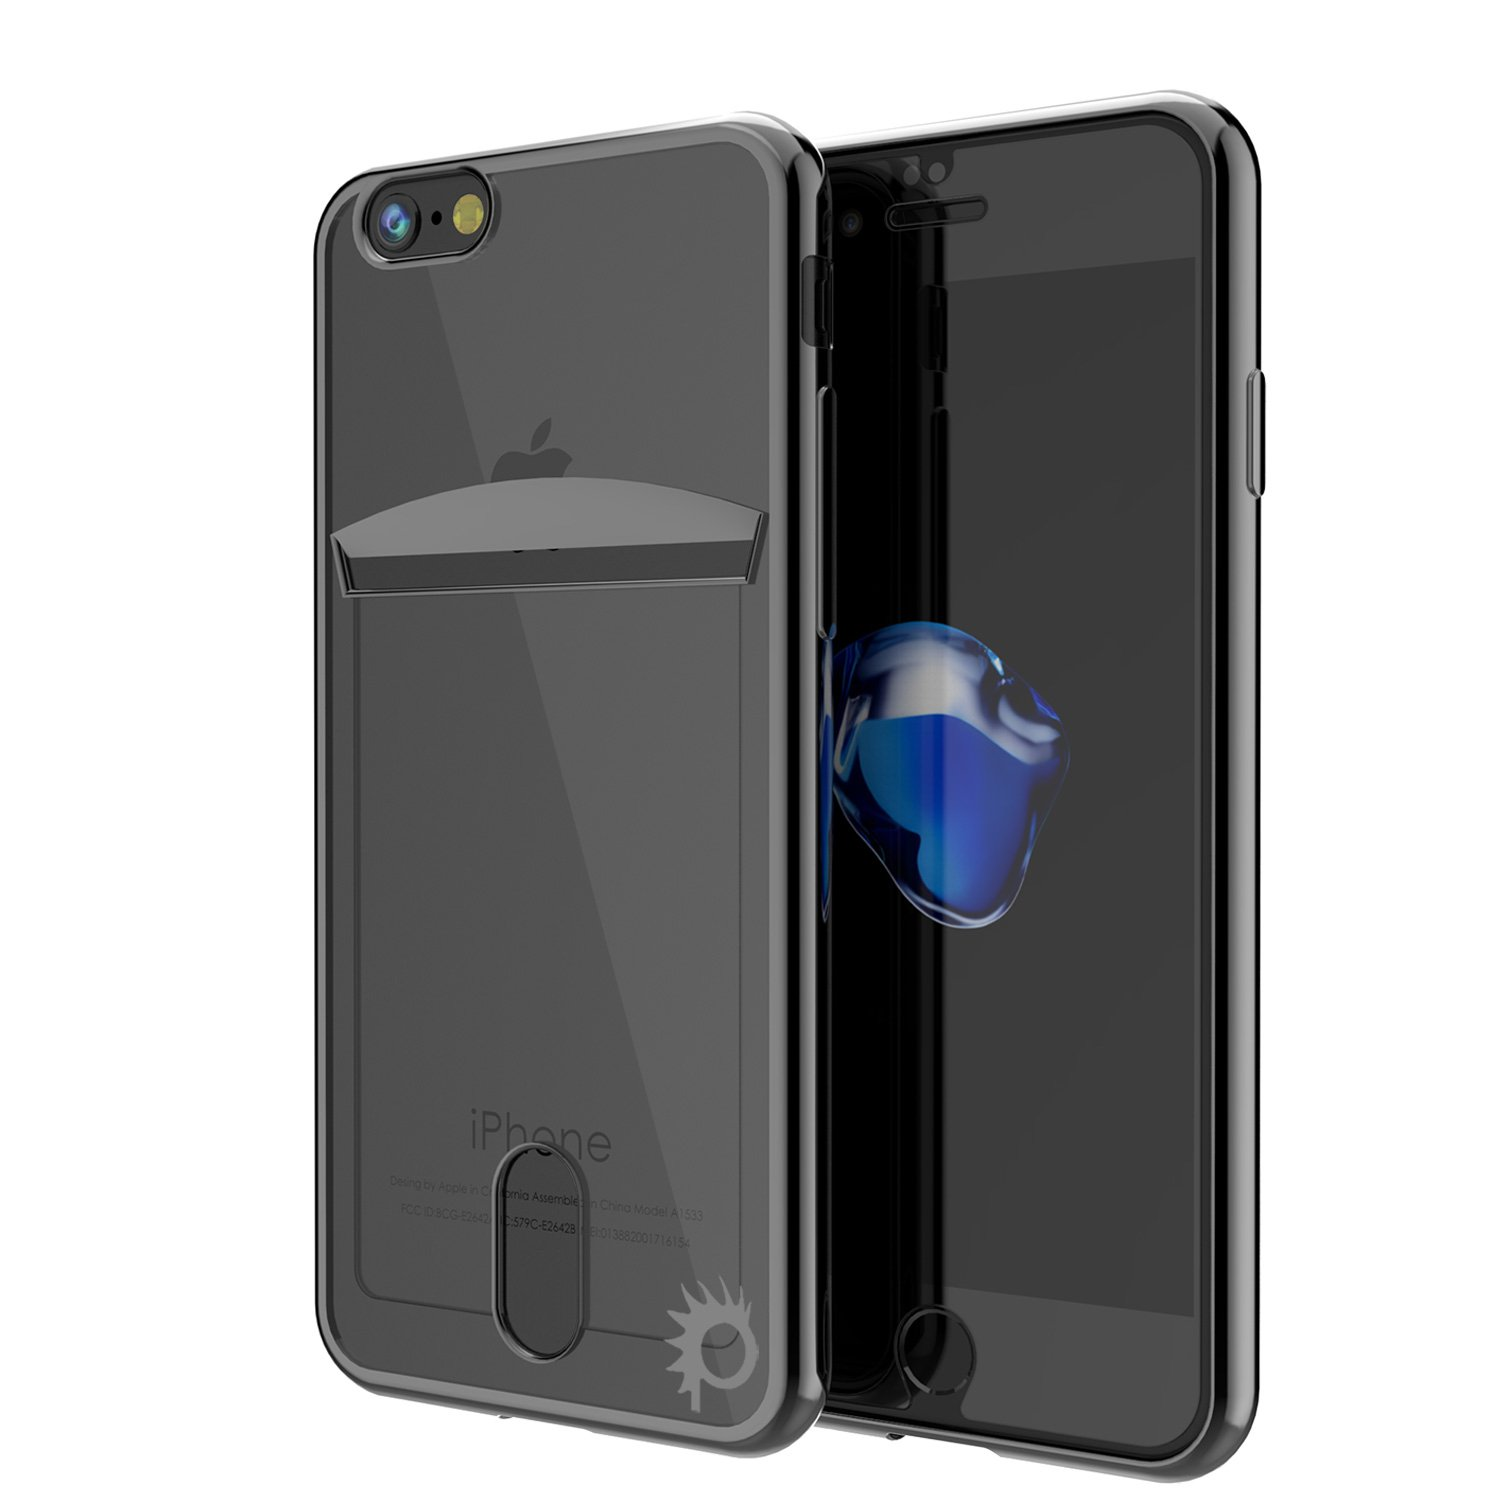 iPhone 7s/7 Case, PUNKcase [Lucid Series] Slim Fit Protective Dual Layer Armor Cover W/Scratch Resistant PUNKSHIELD Screen Protector - [Card Slot Design] for Apple iPhone 7/7s [Black]